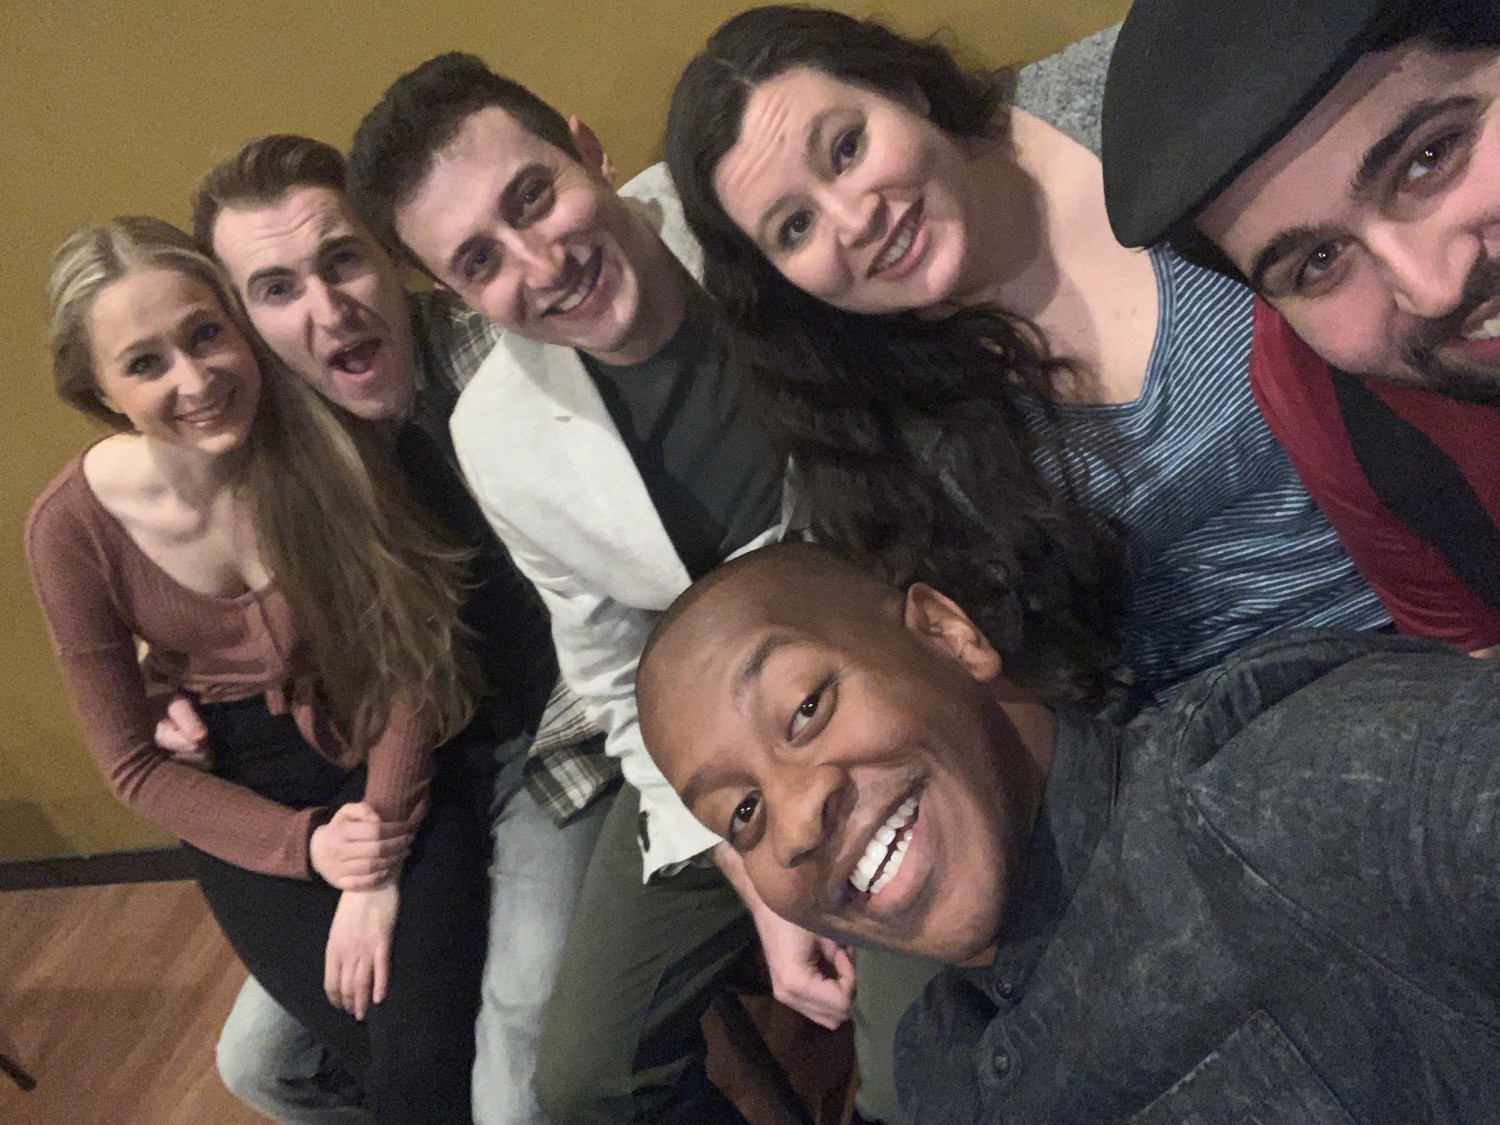 BWW Feature: DAY AND AGE Musical Set For Long Island Premiere at Cultural Arts Playhouse